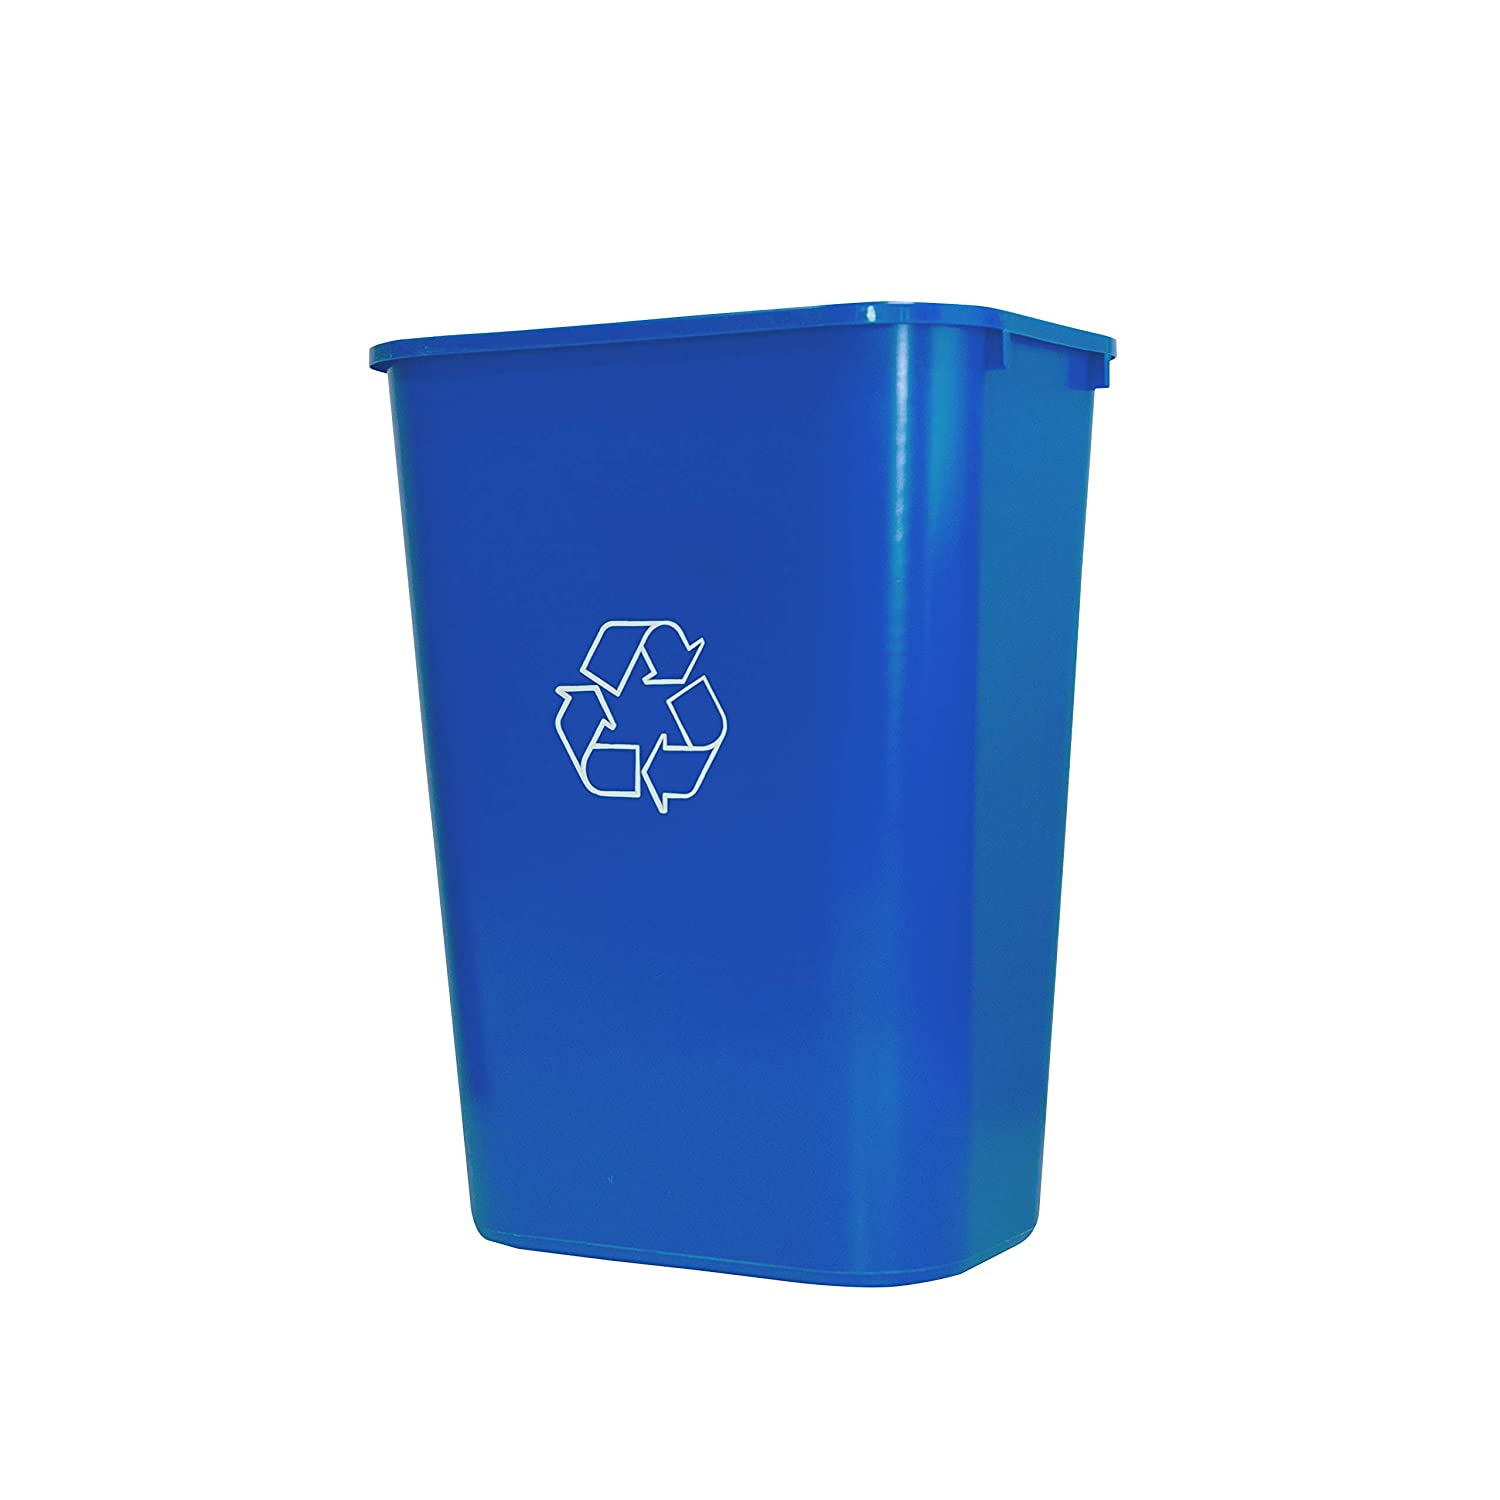 SOLEGEAR 941 41 quart/39 L Tall Waste Bin Ingram Micro Canada